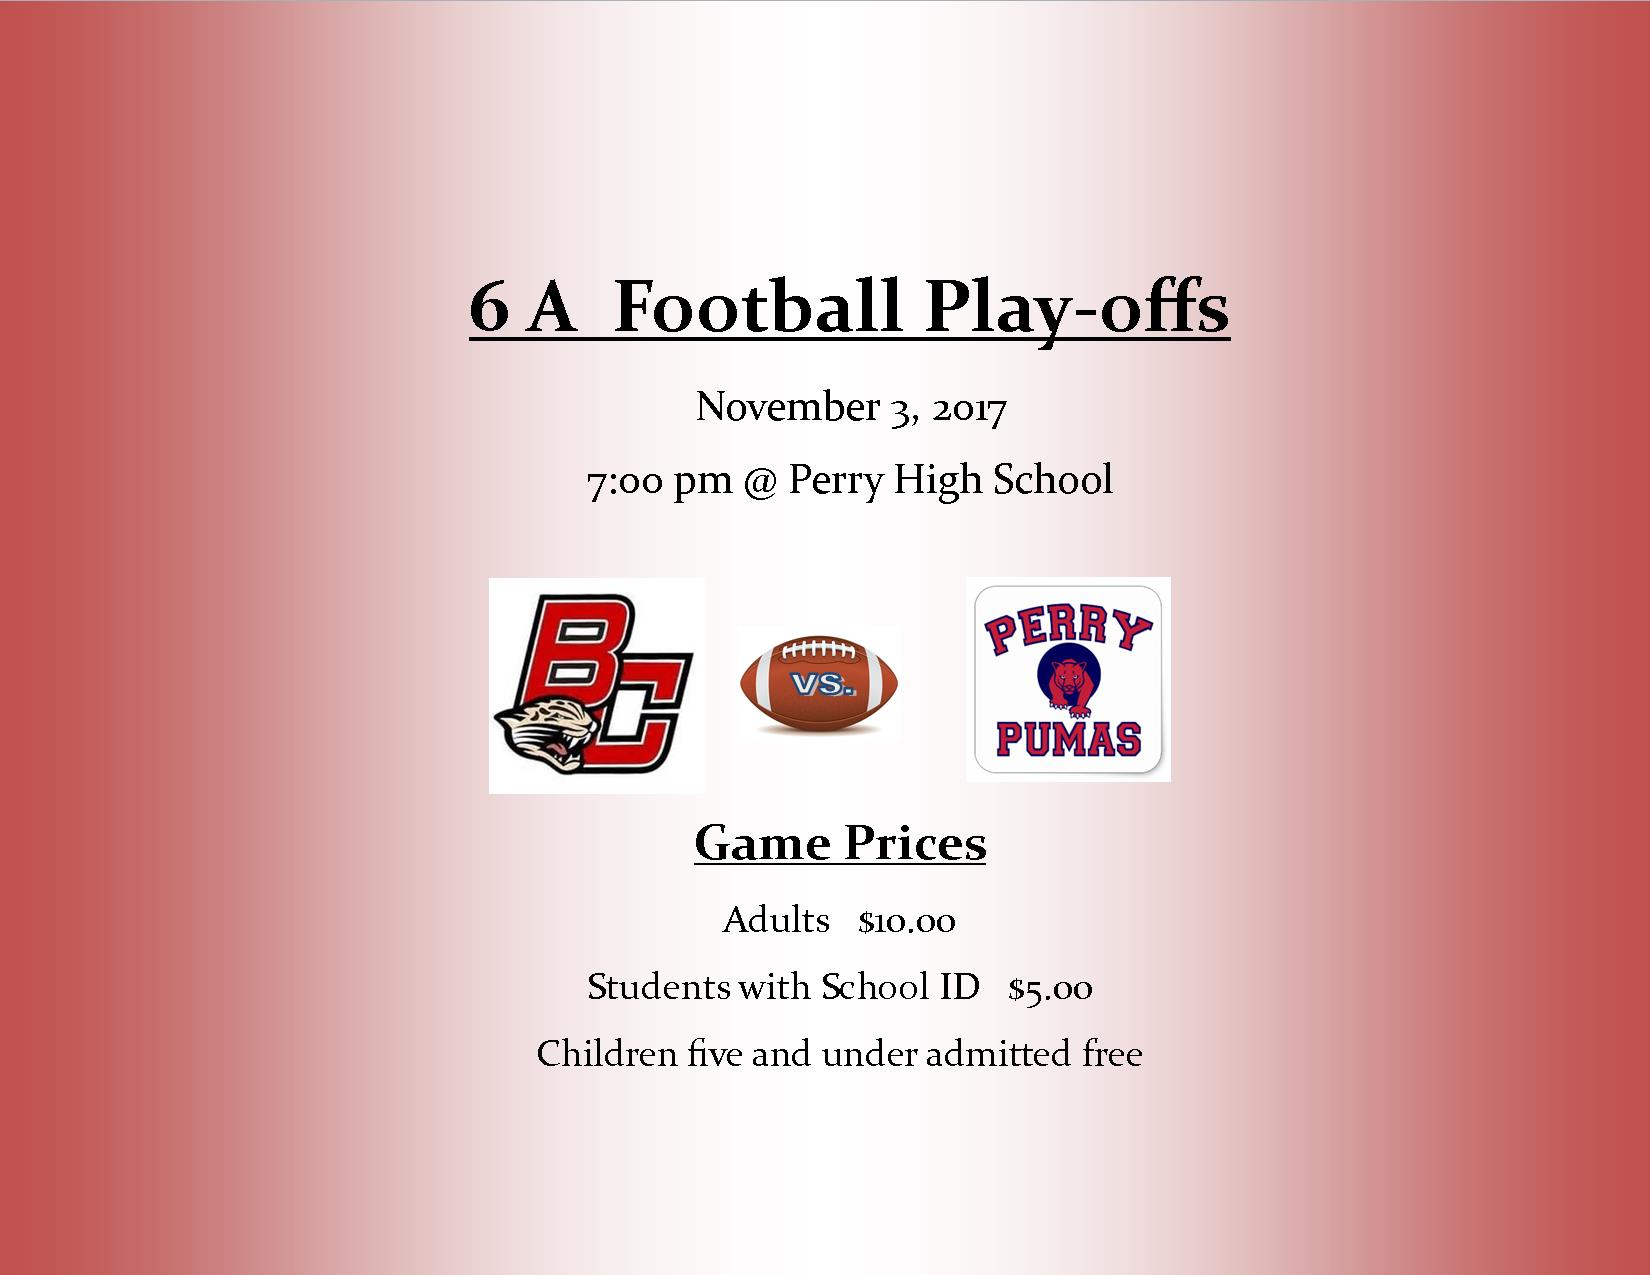 Cheer on Boulder Creek Football for the 1st round of Playoffs tonight @ Perry High School at 7:00 pm